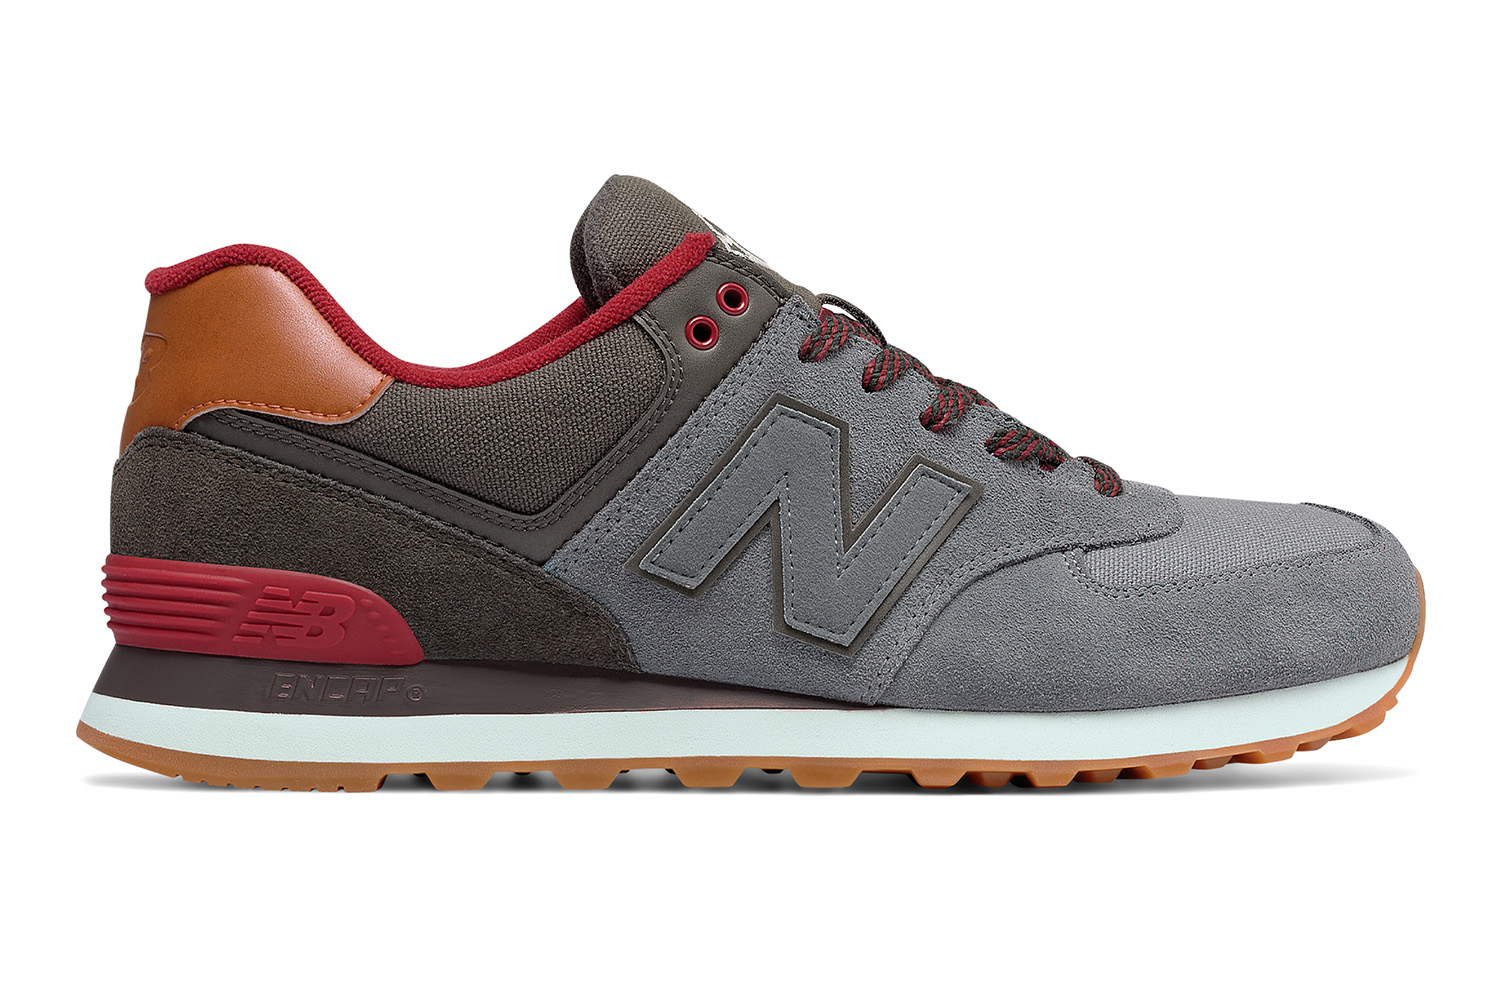 New balance 574 - TRENDS periodical